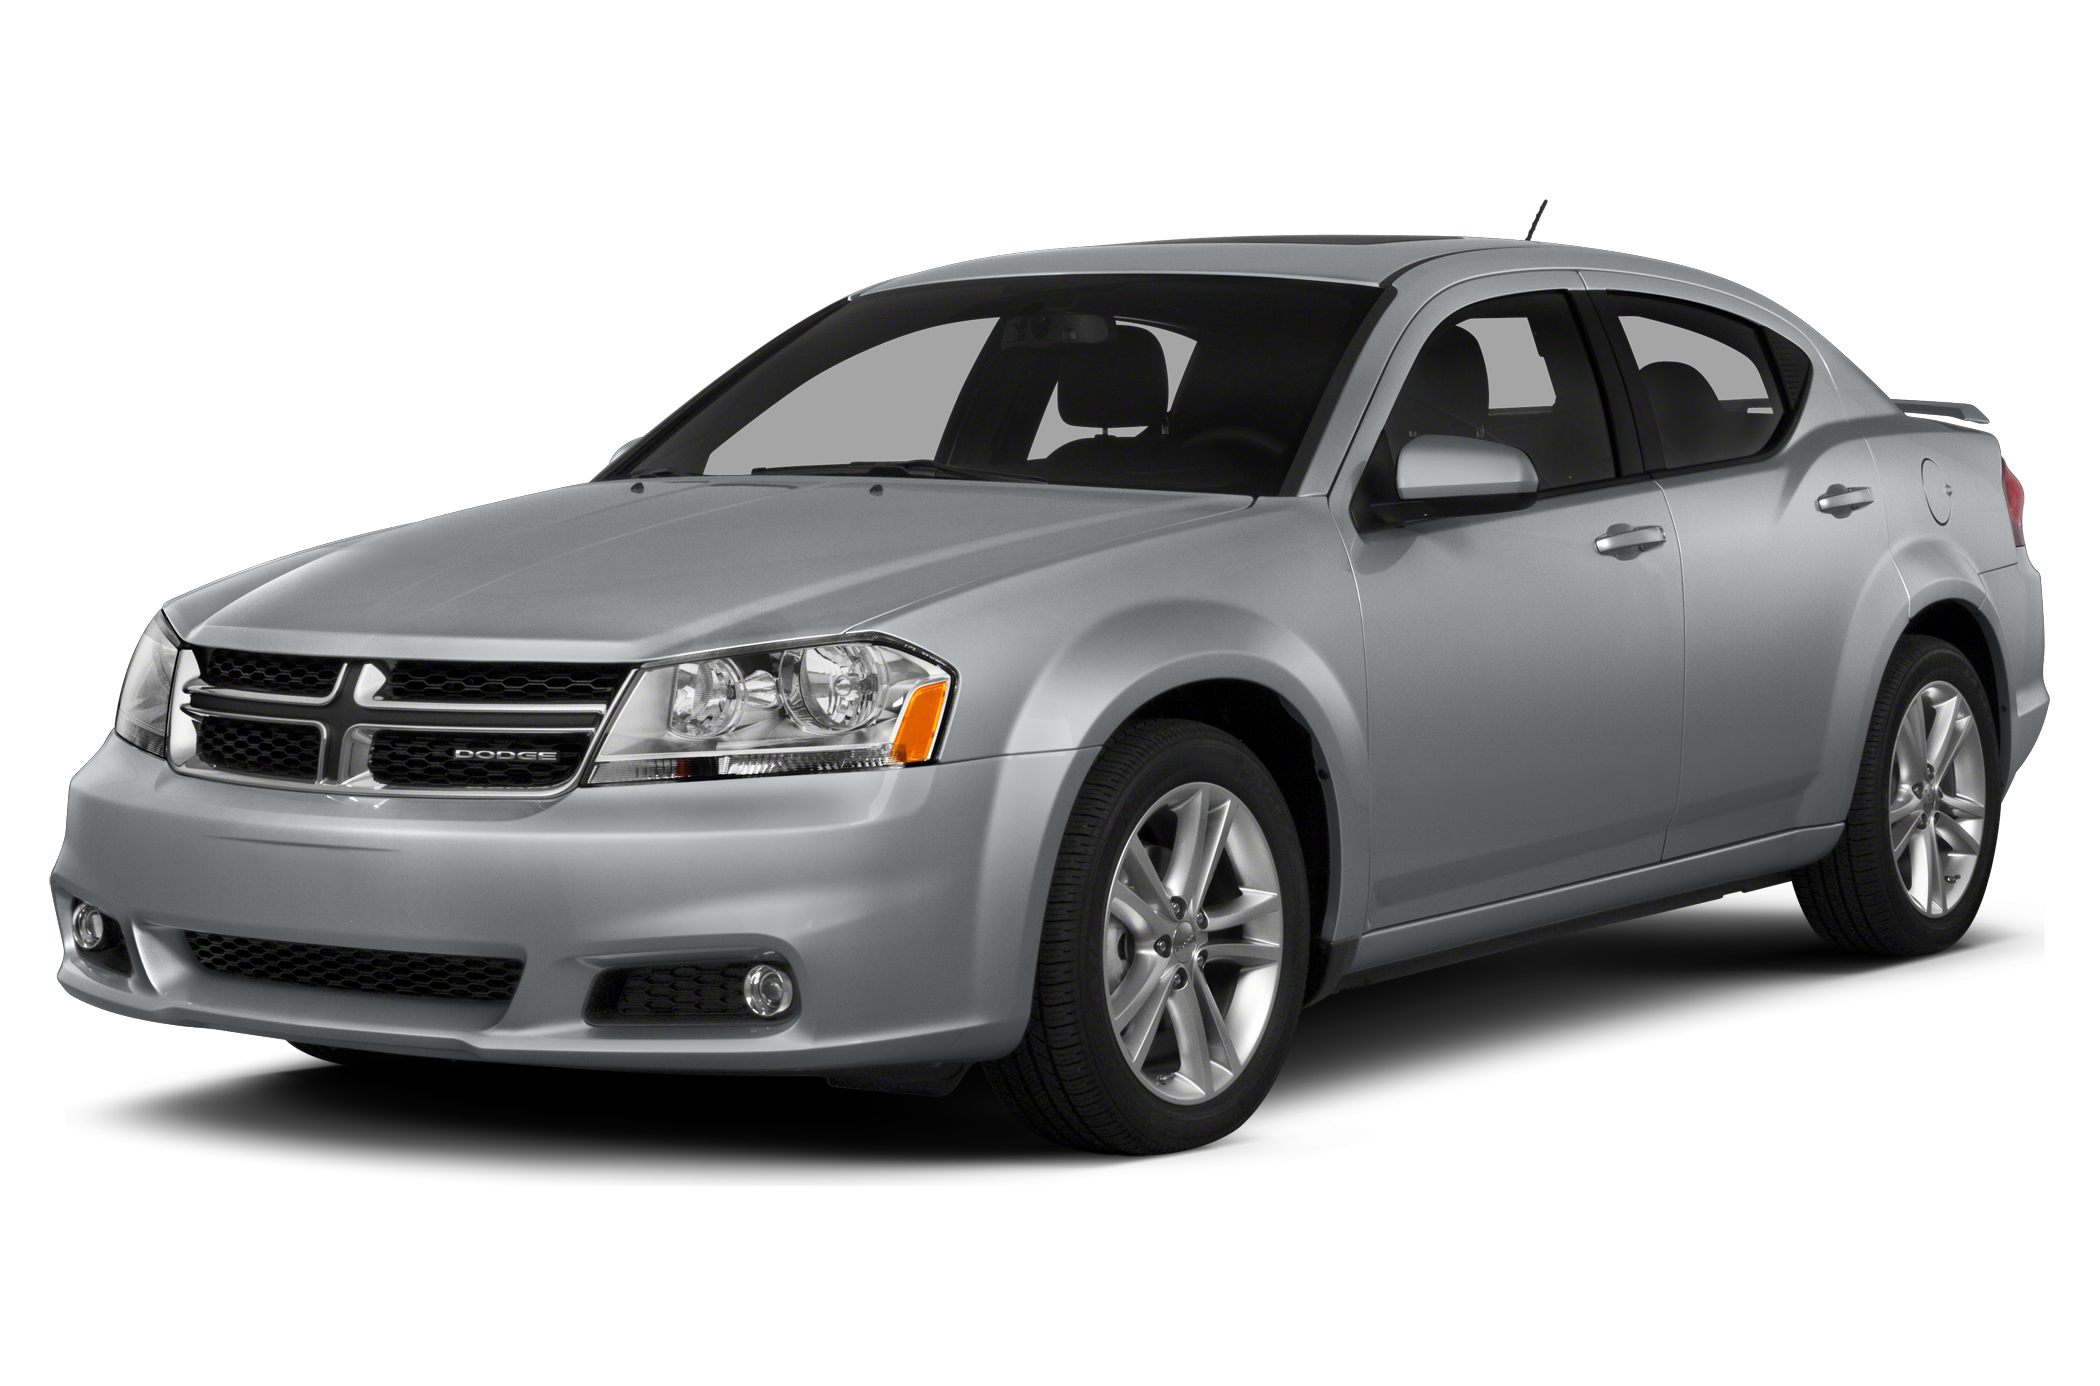 2014 Dodge Avenger SE Sedan for sale in Dayton for $15,725 with 22,339 miles.